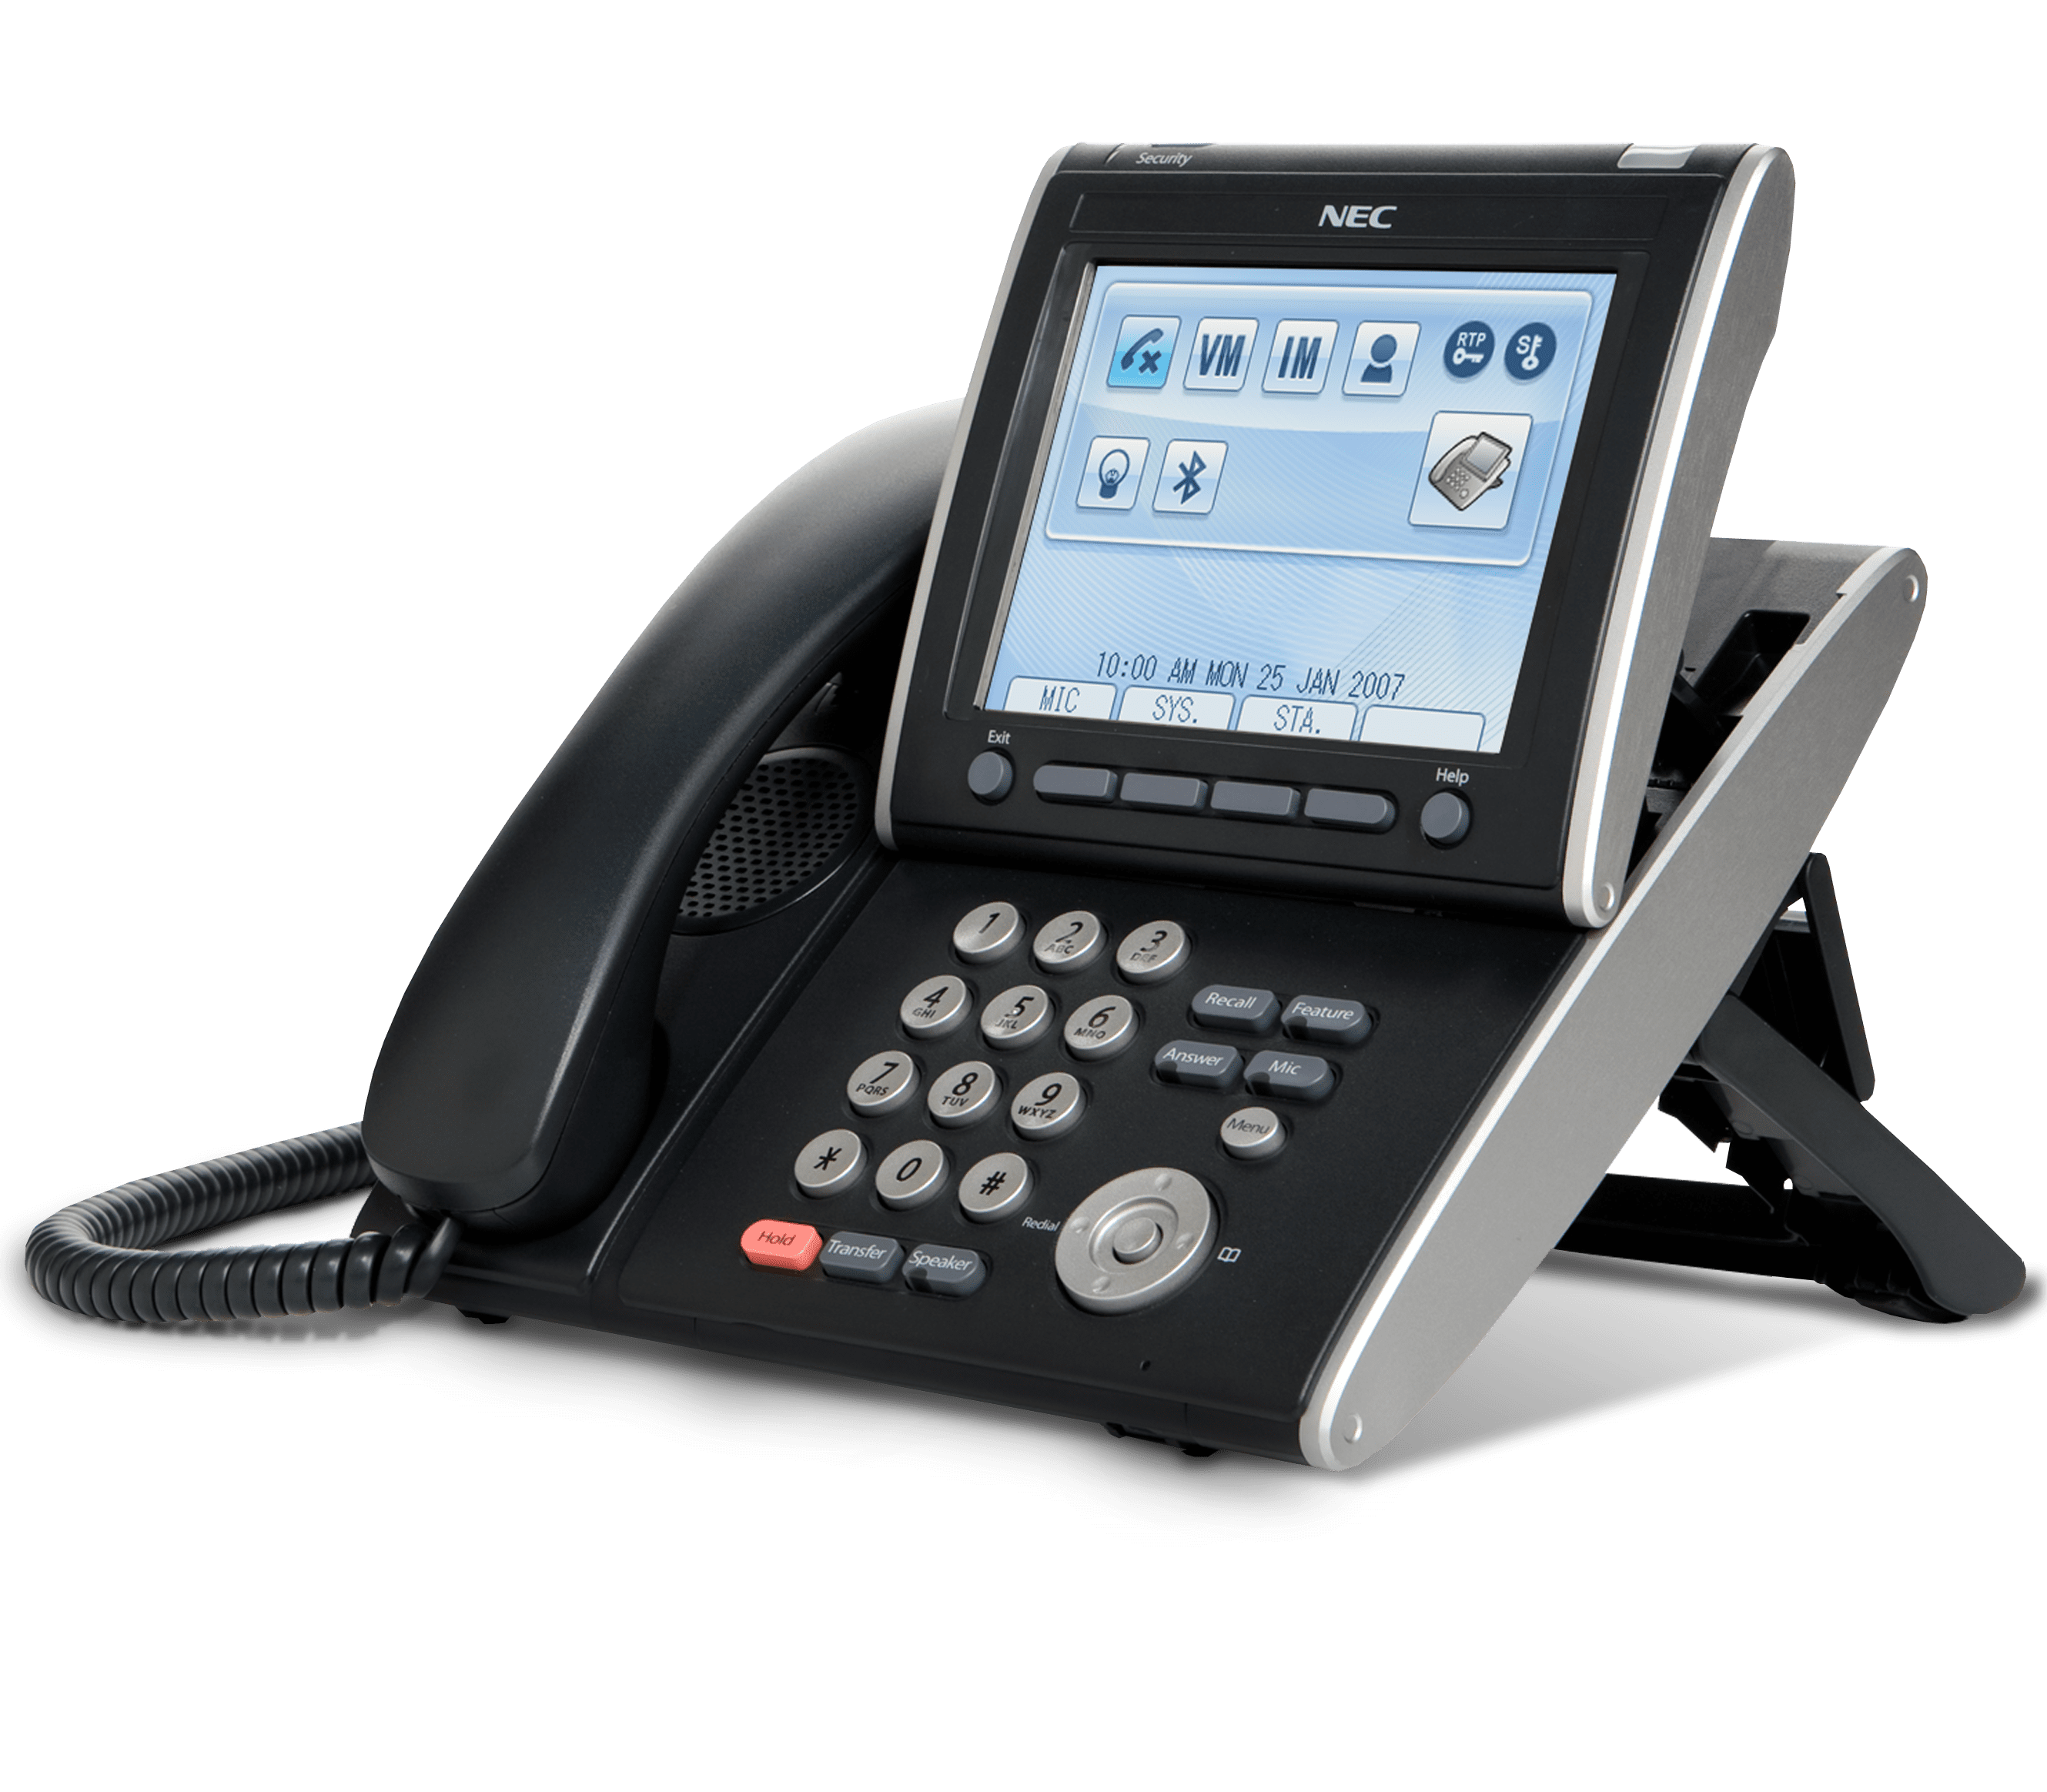 NEC Handset - NEC DT750 - Nec Touch screen IP Phone